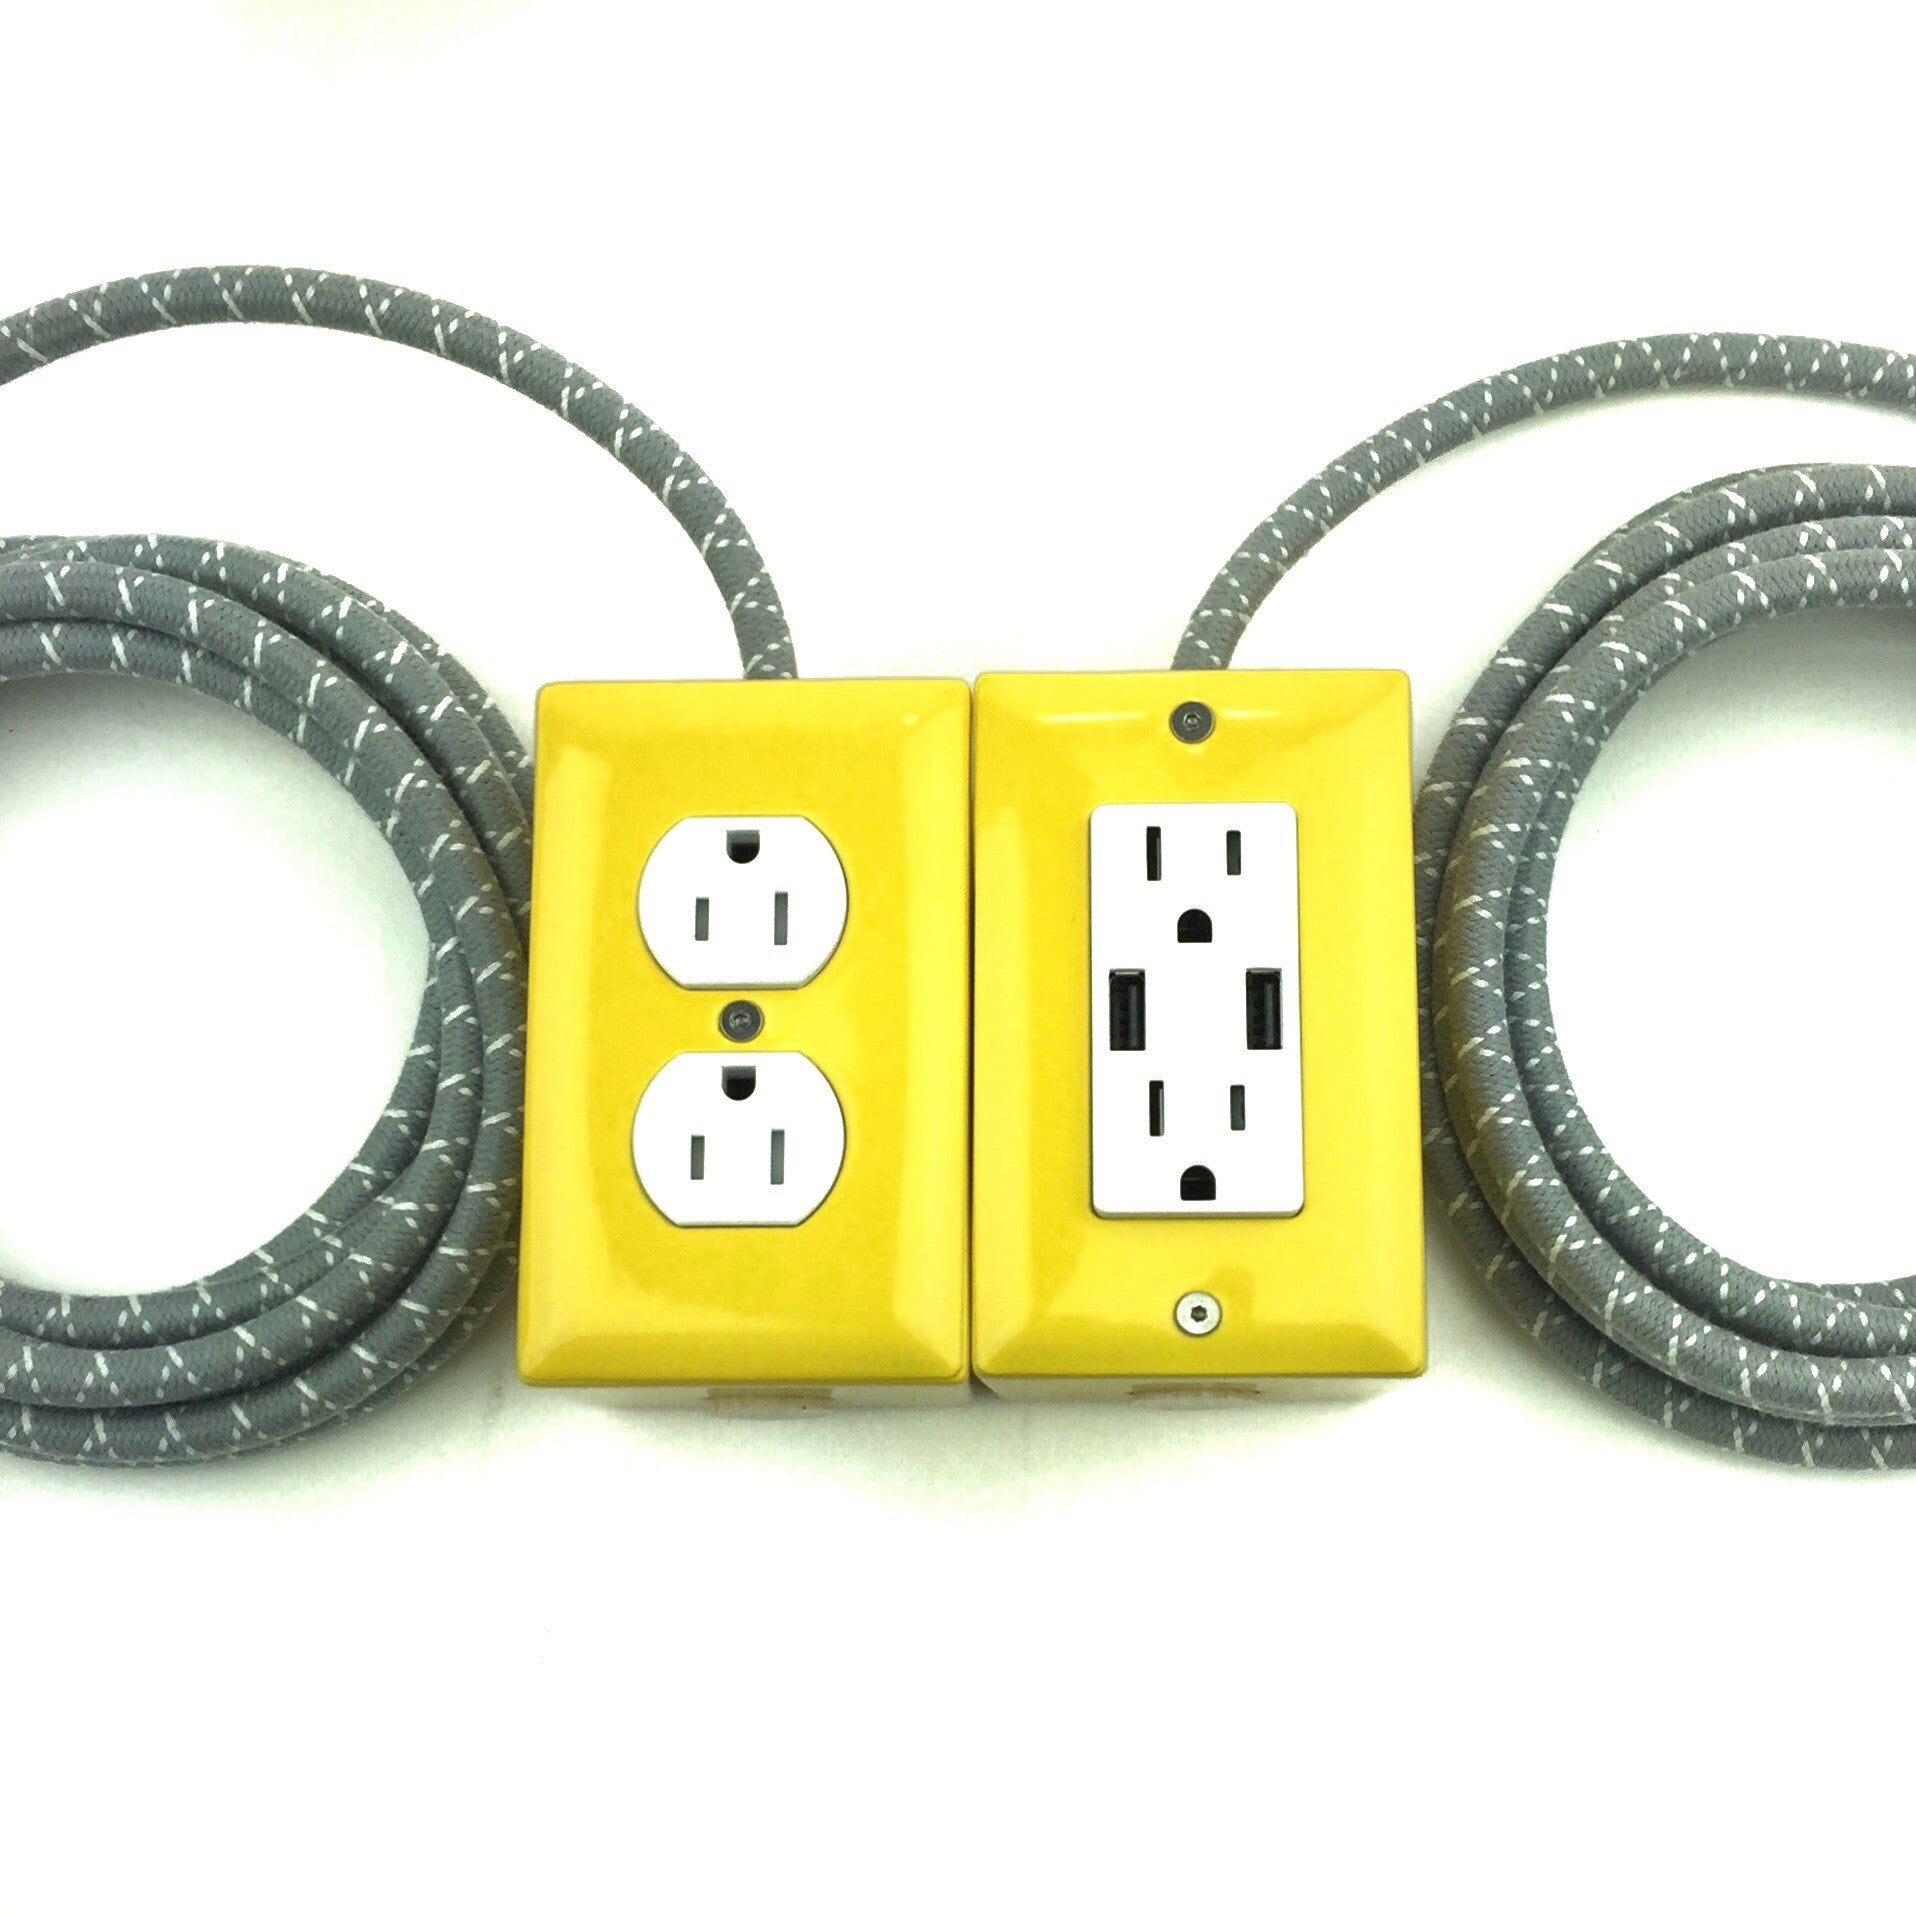 12\' Extō USB - The First Smart Chip Extension Cord | The Conway ...